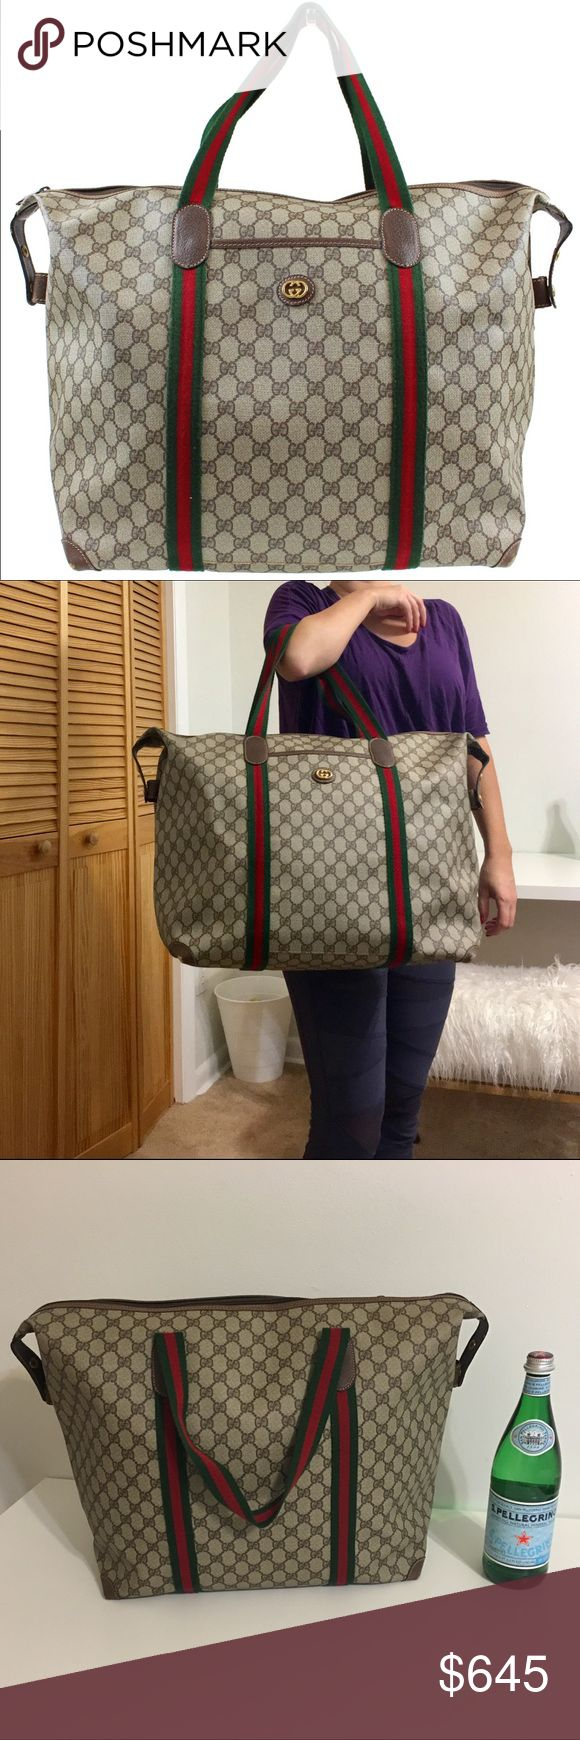 Authentic GUCCI GG Boston Handbag Authentic GUCCI GG Boston Handbag. Made in Italy. Classic Gucci green & red handles, Gucci pattern canvas and gold logo in the front. One outside pocket. Canvas & inside very clean. Please see corners on the picture. Serial nr 012.39.6211 9411. Zipper works smooth. Smoke free home. If you like super oversized totes... this one is for you! Can also be used as a luggage. Pls free to request different pic. Great travel/Weekender bag! Approx. dimensions are: 18L…